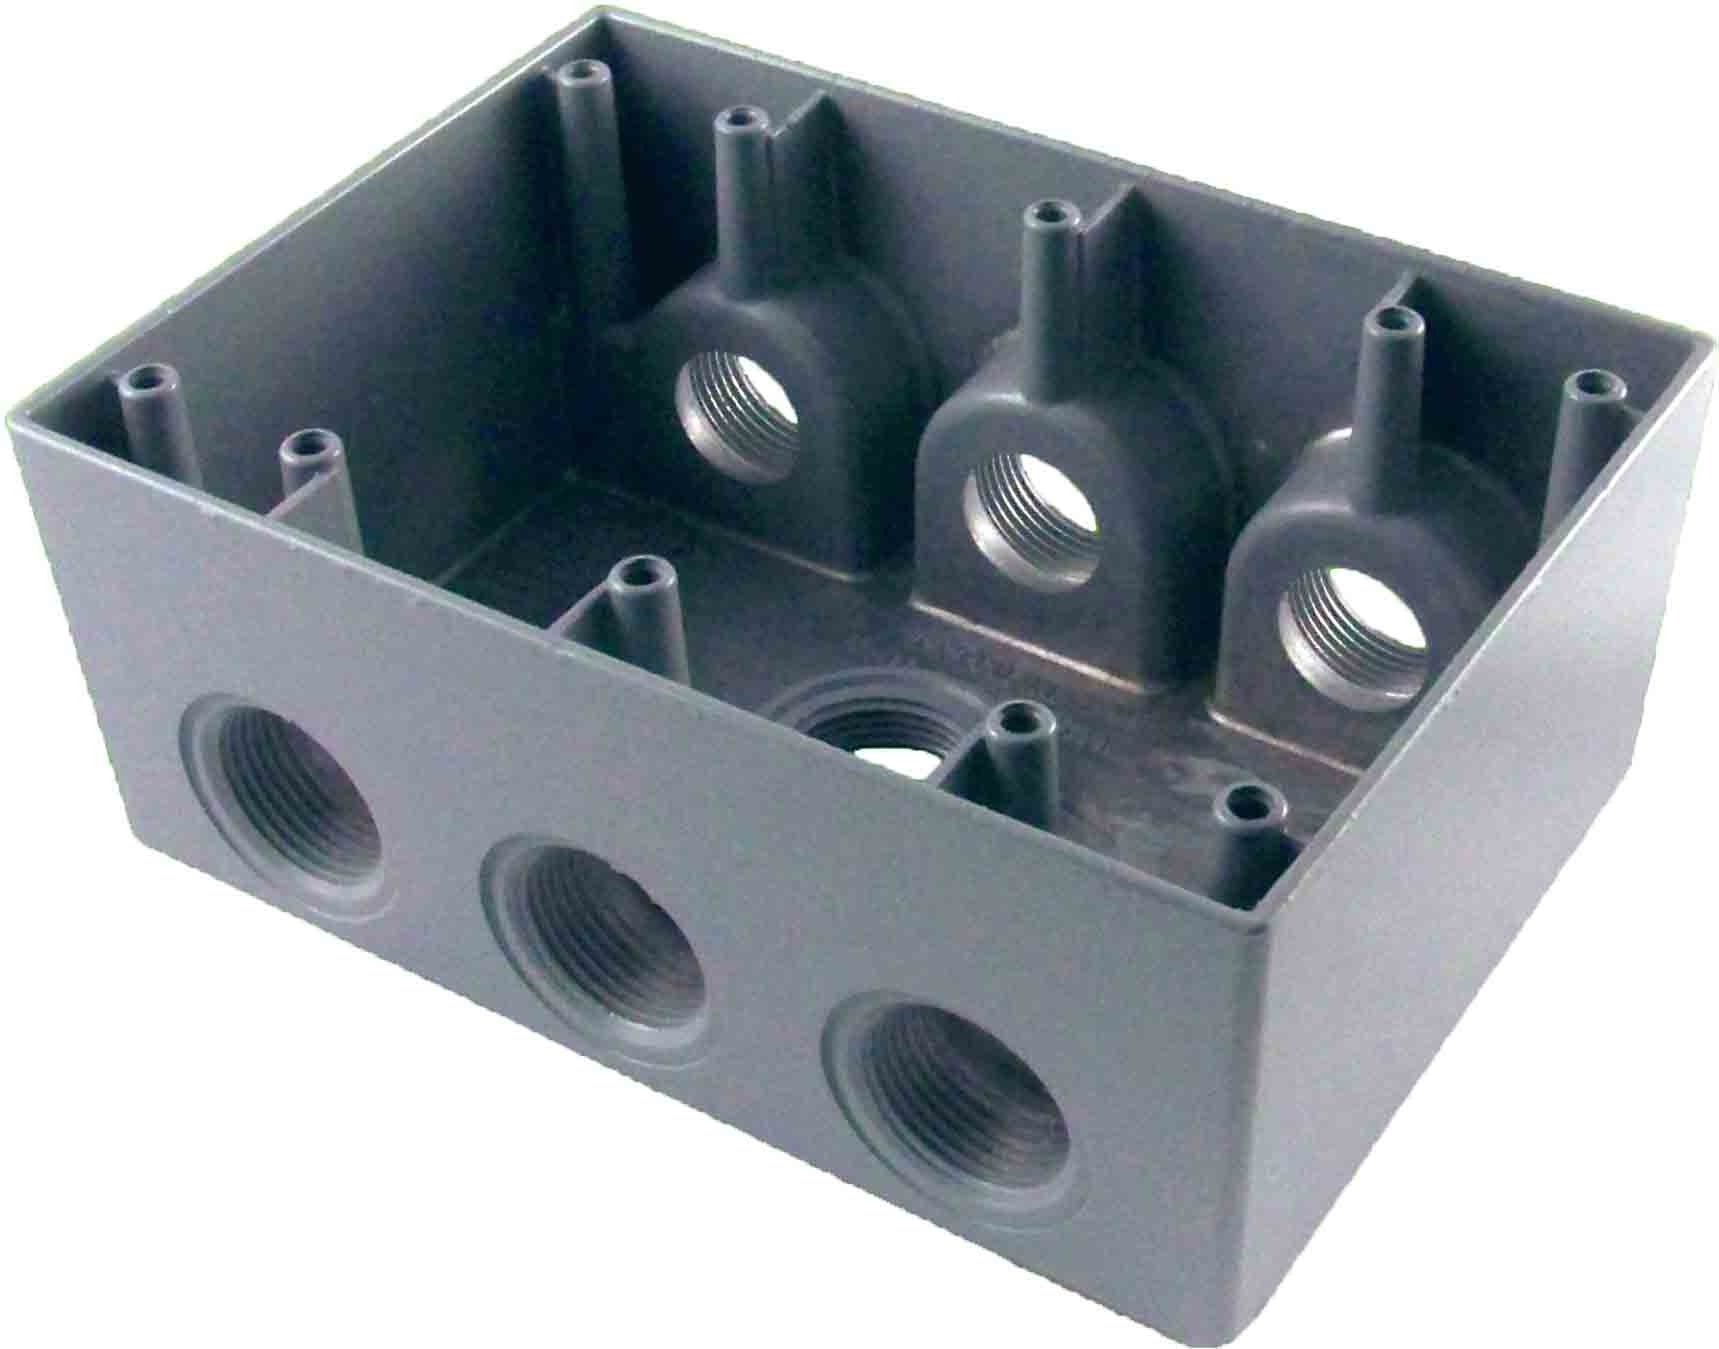 Made in USA Weatherproof Electrical Outlet Box (7) 3/4'' Holes - Gray